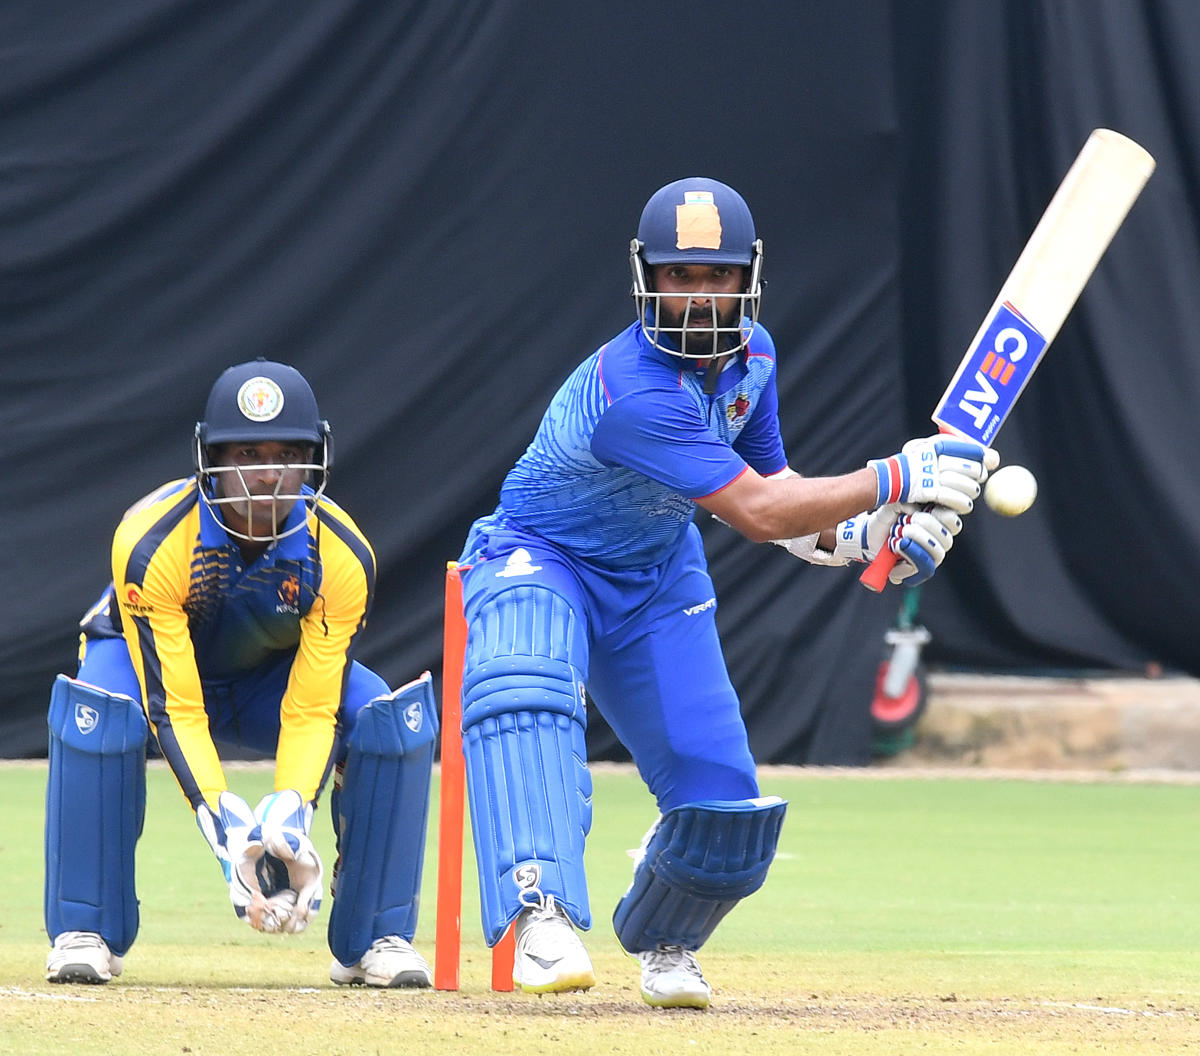 Mumbai's Ajinkya Rahane plays a reverse hit during his century against Karnataka in the Vijay Hazare Trophy at the Chinnaswamy stadium in Bengaluru on Friday. DH Photo/ Srikanta Sharma R